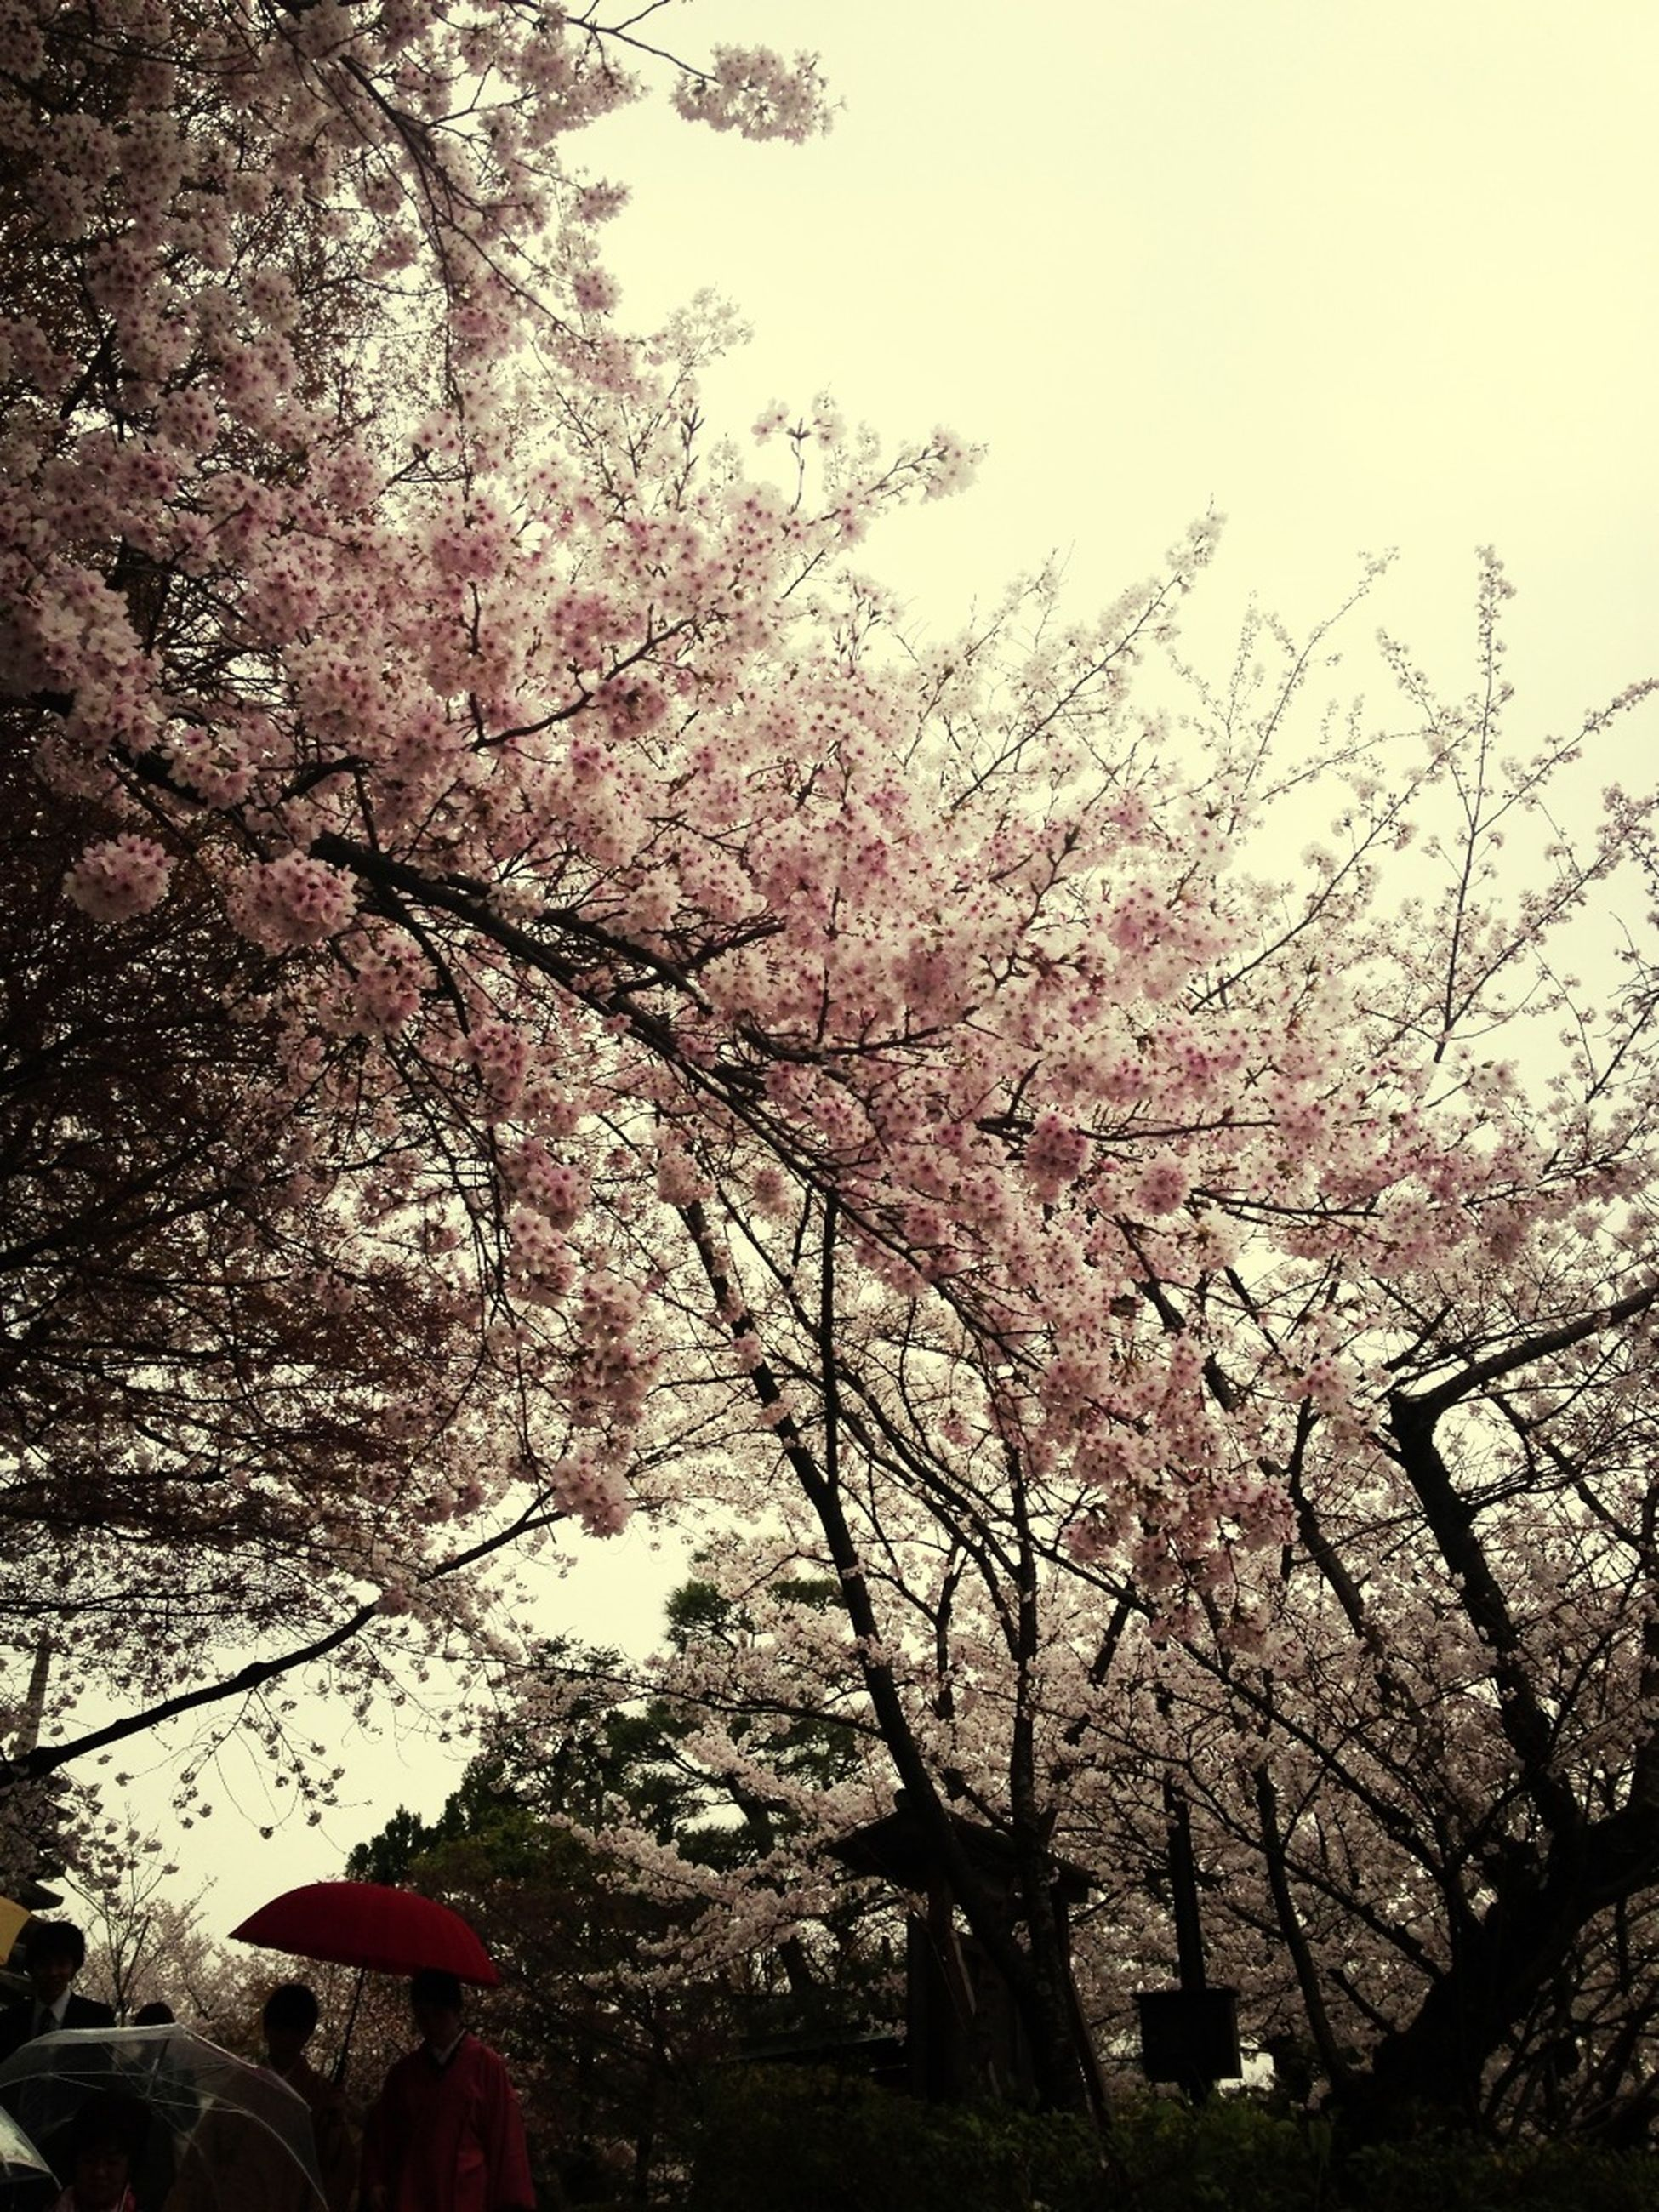 tree, branch, low angle view, flower, pink color, growth, cherry tree, sky, beauty in nature, cherry blossom, nature, clear sky, blossom, freshness, fragility, day, outdoors, springtime, pink, no people